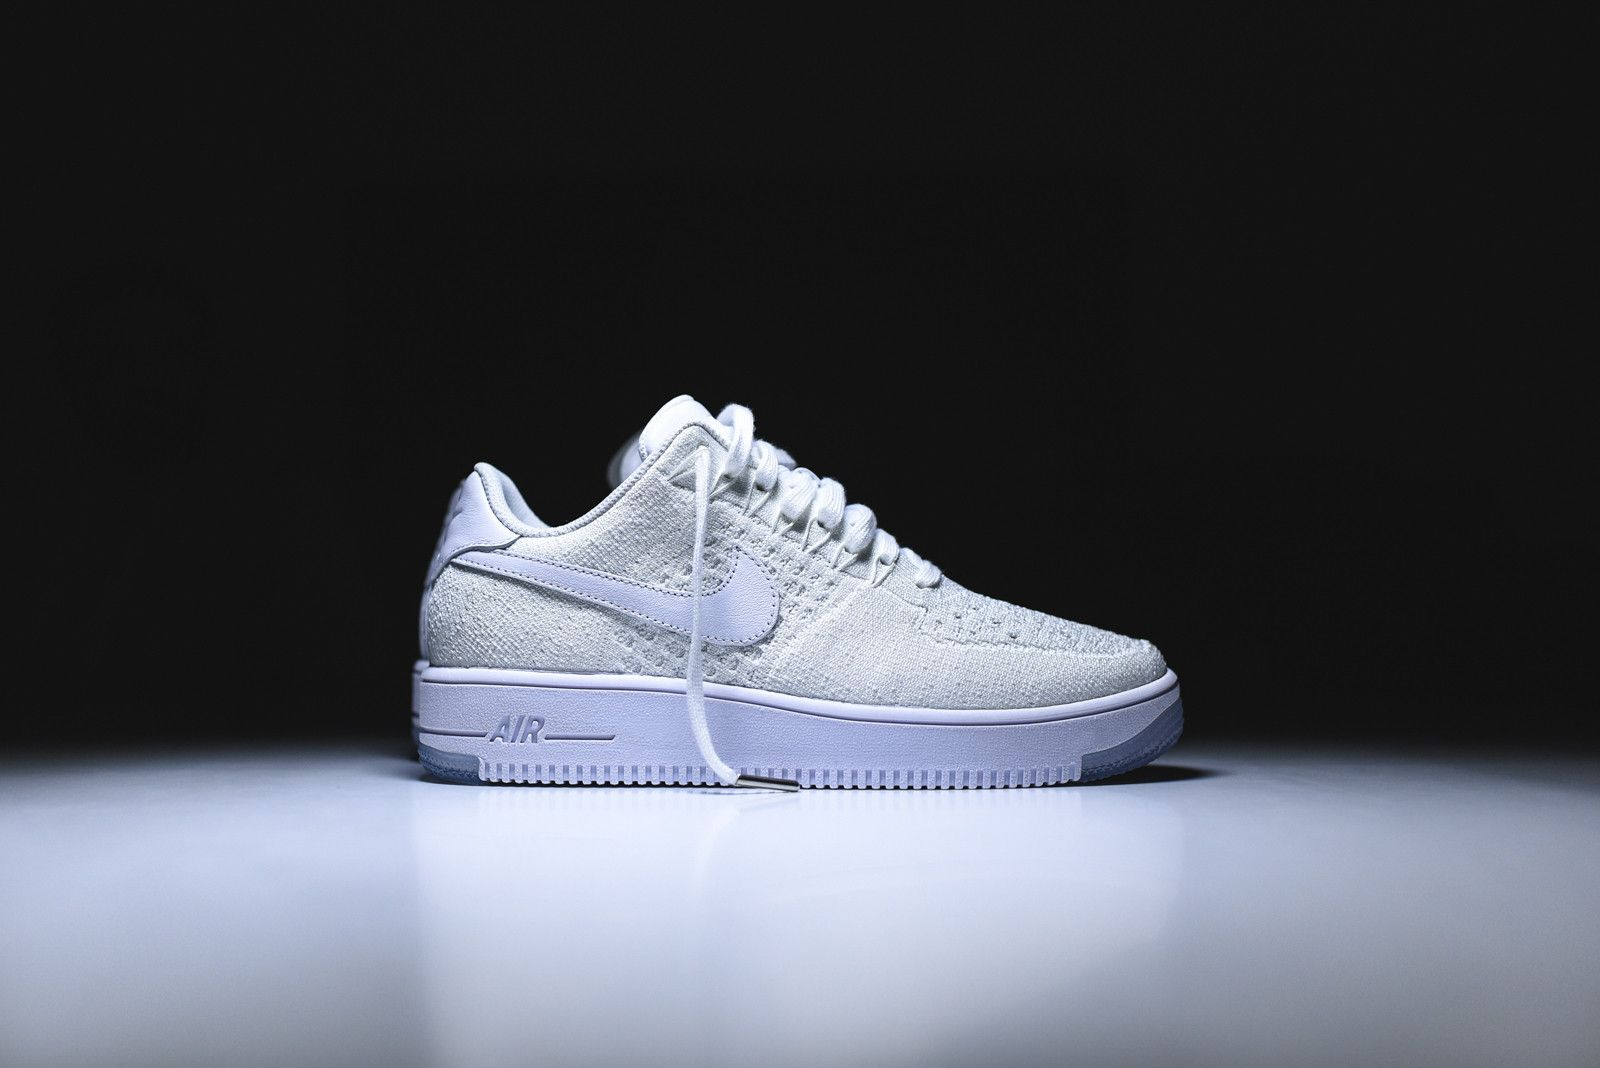 newest 2999c 120b0 Nike Air Force 1 Flyknit Low - Triple White | Sneakers ...